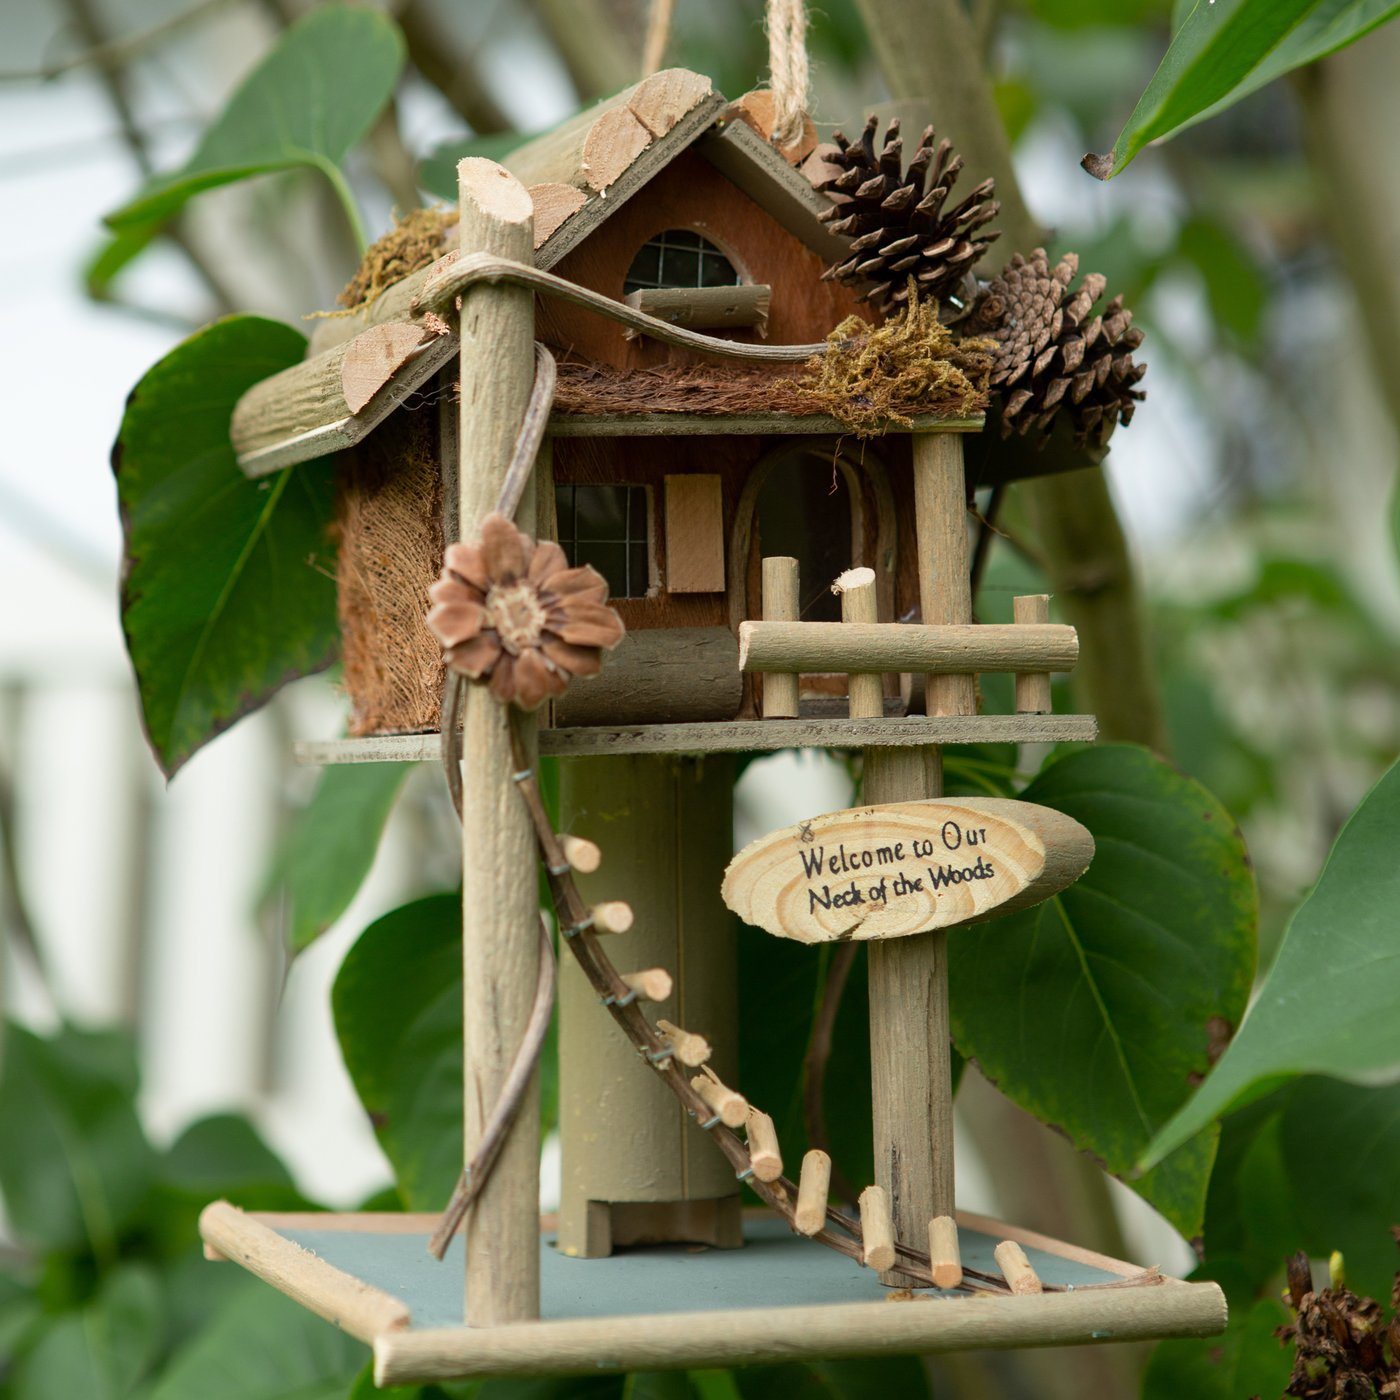 Welcome Rustic Elevated Tree House Birdhouse